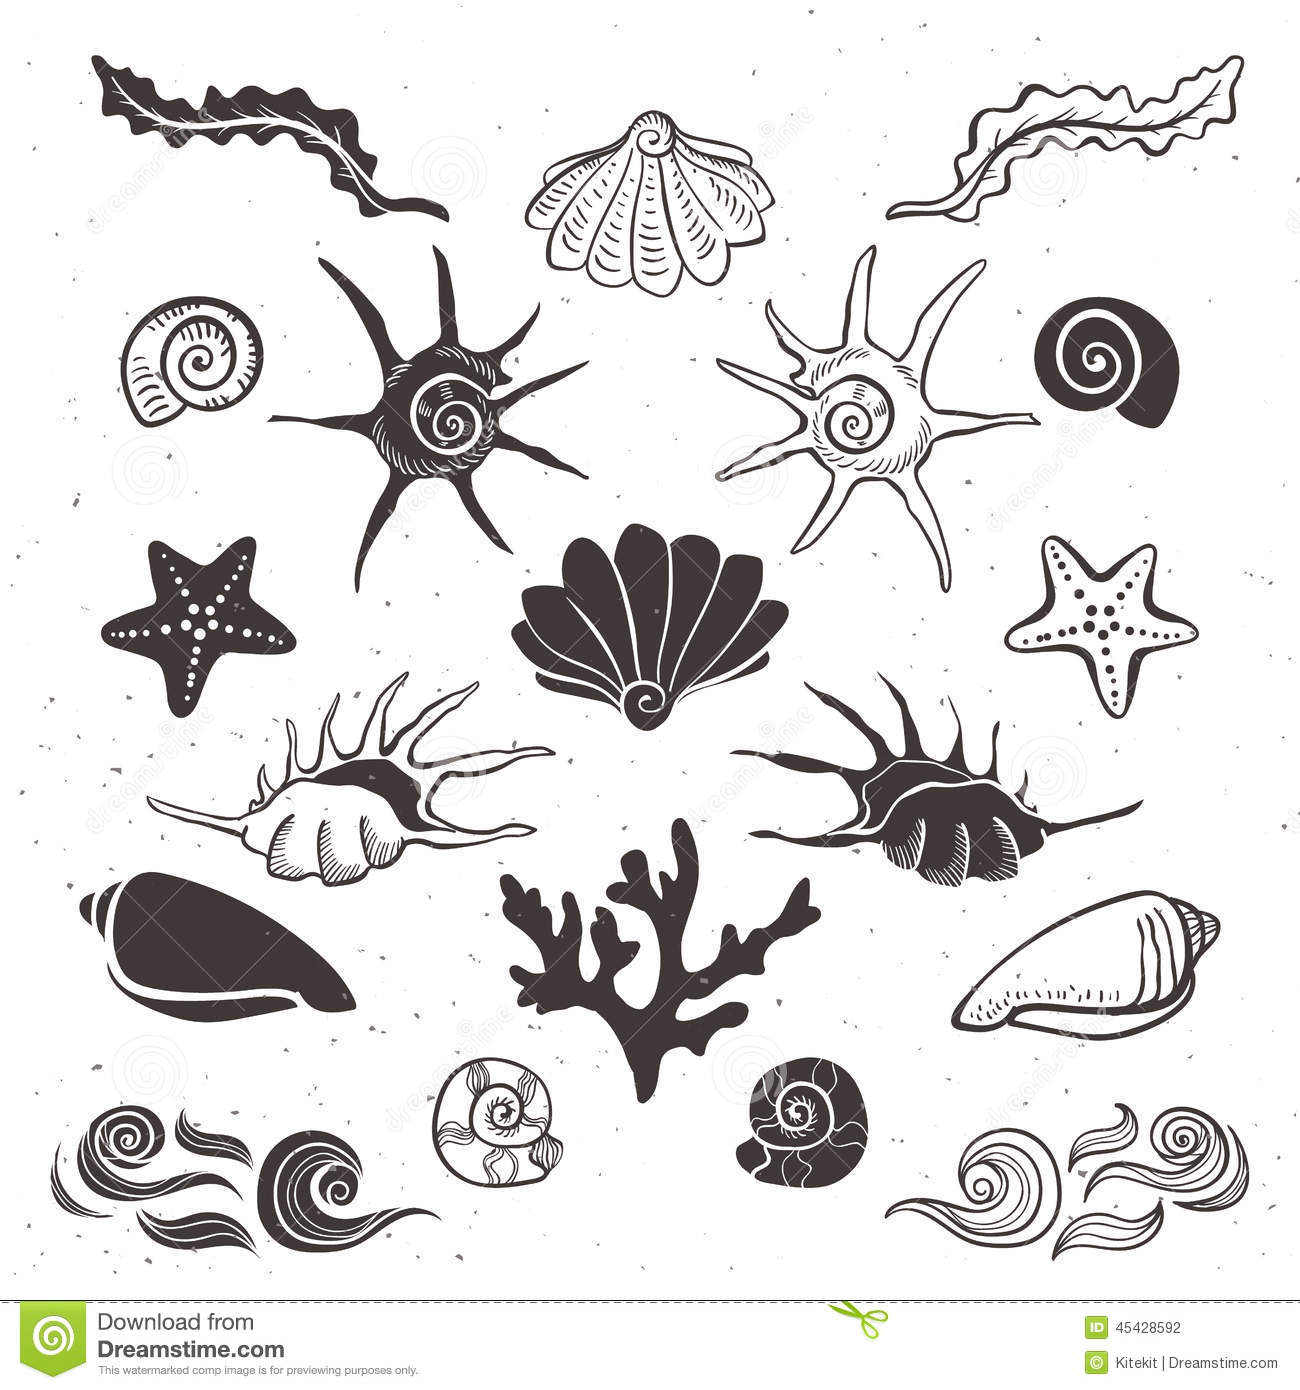 1300x1390 Drawn Starfish Seashell Free Collection Download And Share Drawn